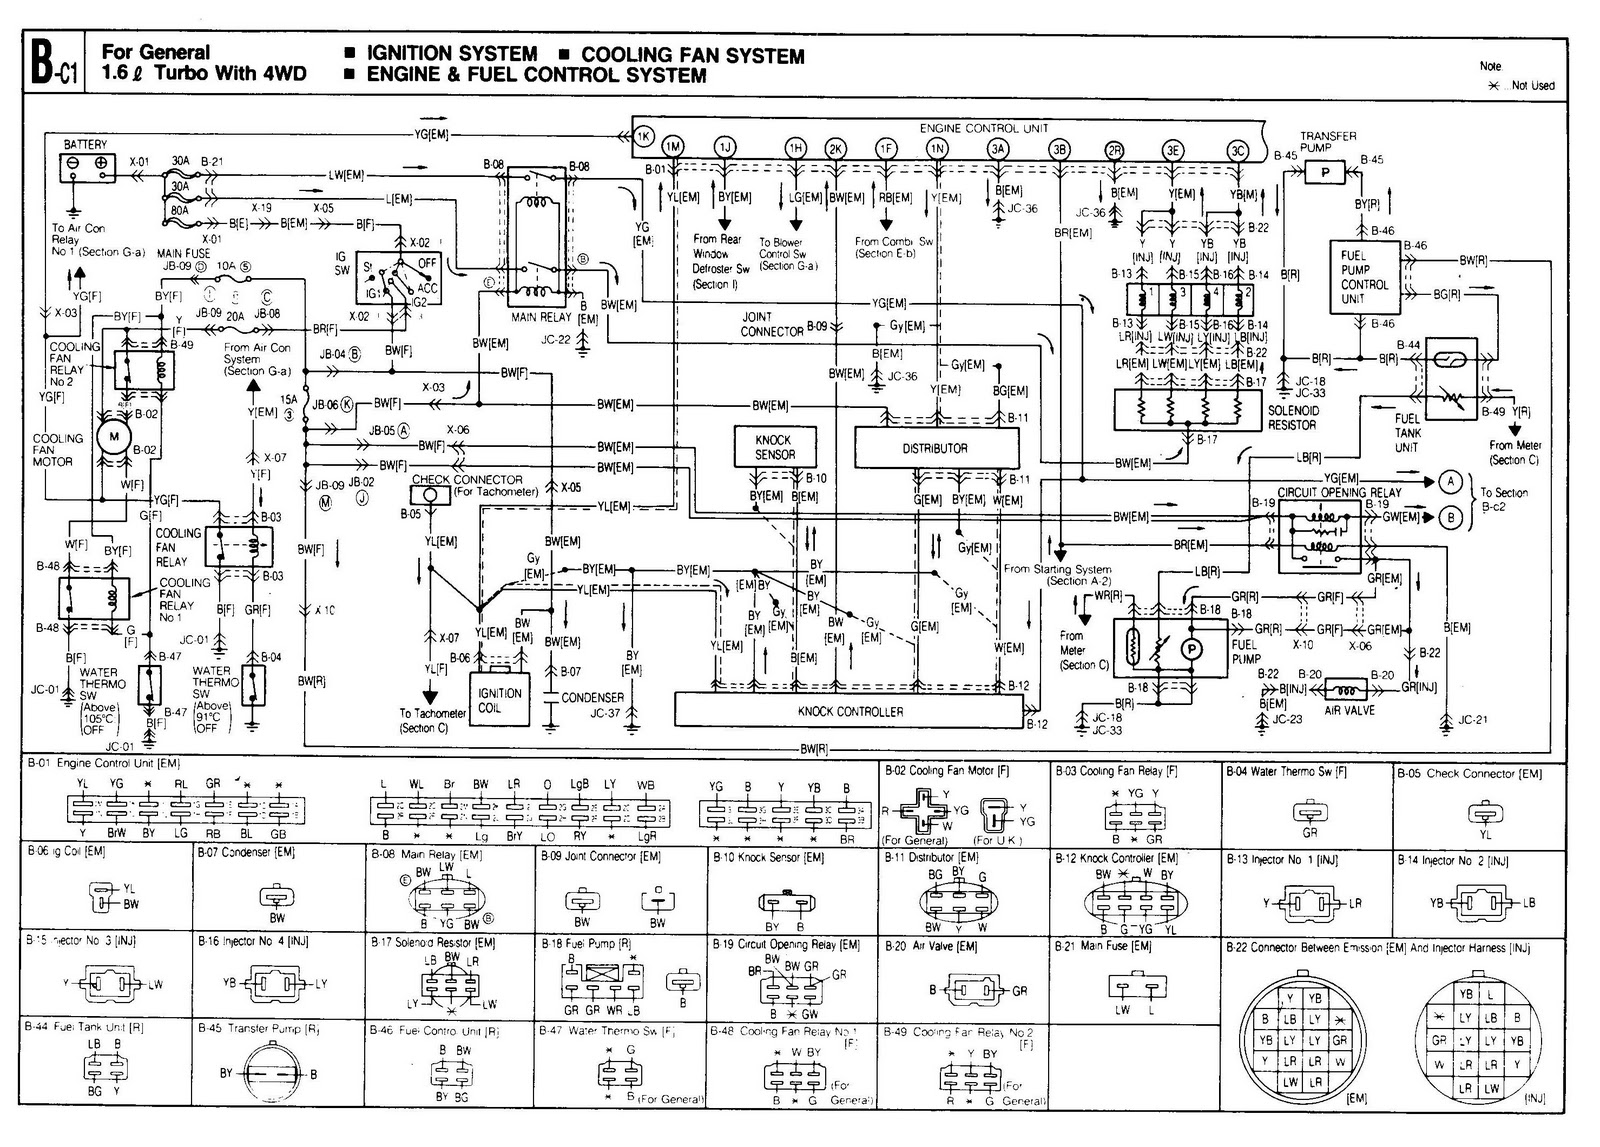 mazda 3 power window wiring diagram all wiring diagram mazda 3 wire diagram mazda electric power power steering pump what chevy cruze wiring diagram mazda 3 power window wiring diagram